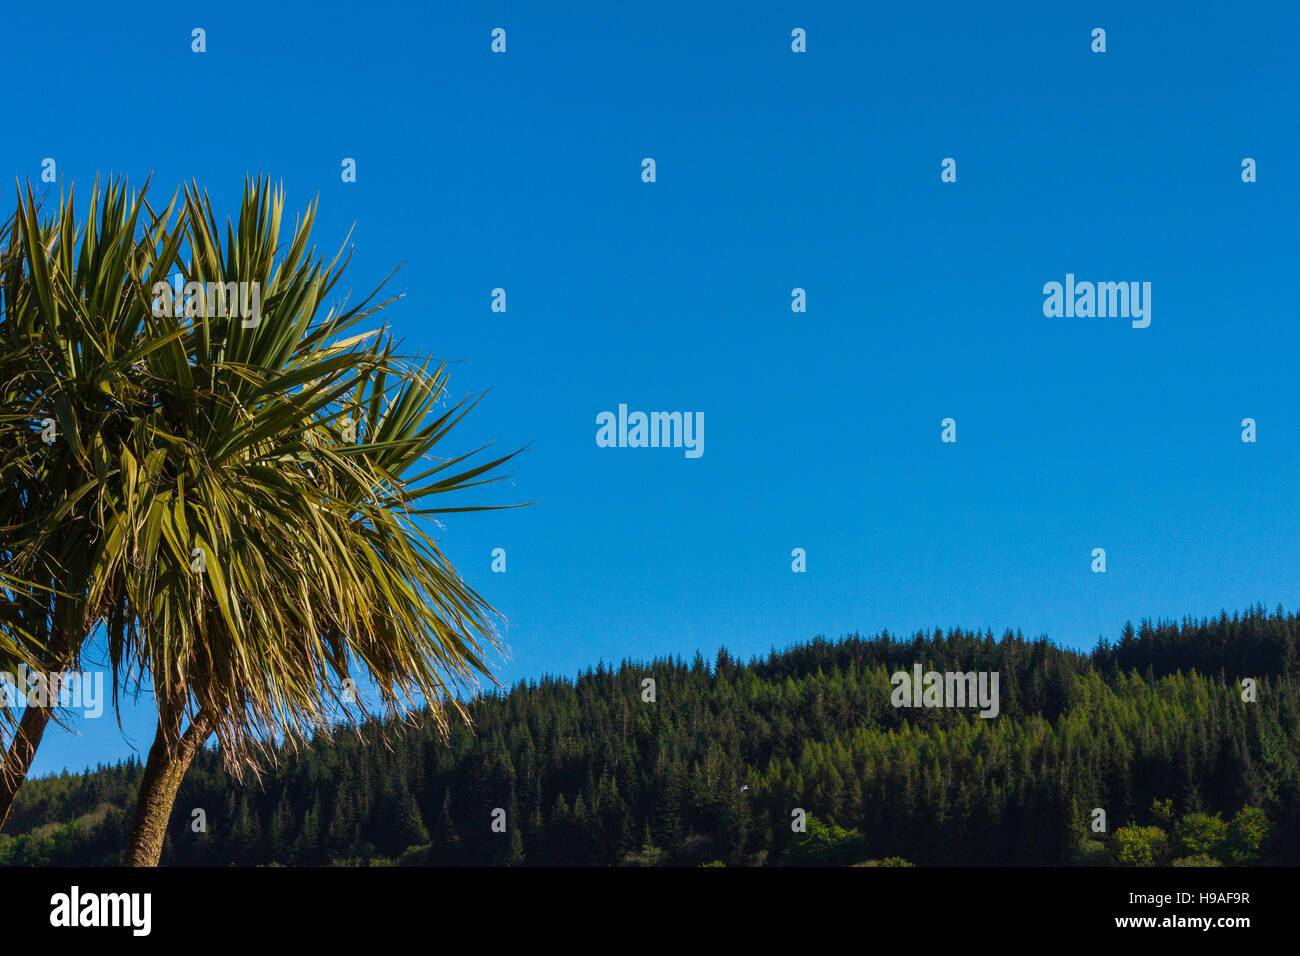 Tropical looking tree against a deep blue sky with woodland in the distance. Lamlash, Arran, Scotland. Stock Photo